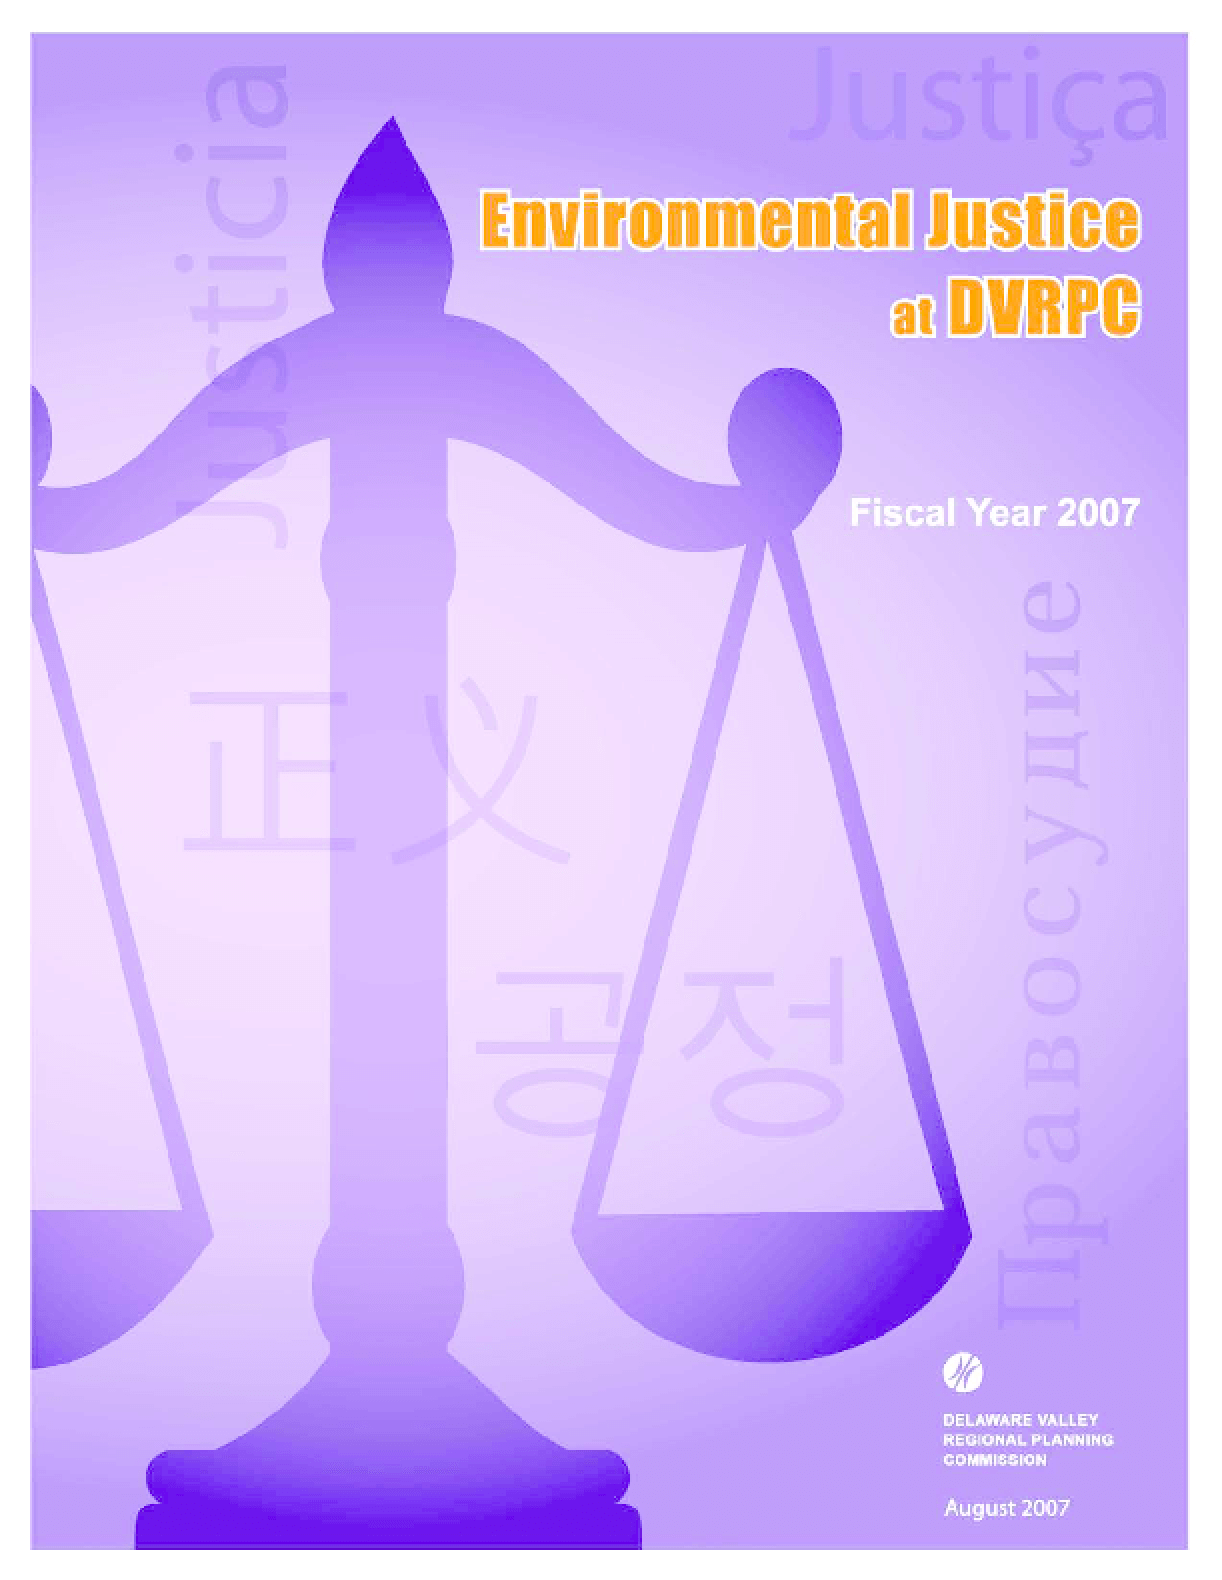 Environmental Justice at DVRPC: Fiscal Year 2007